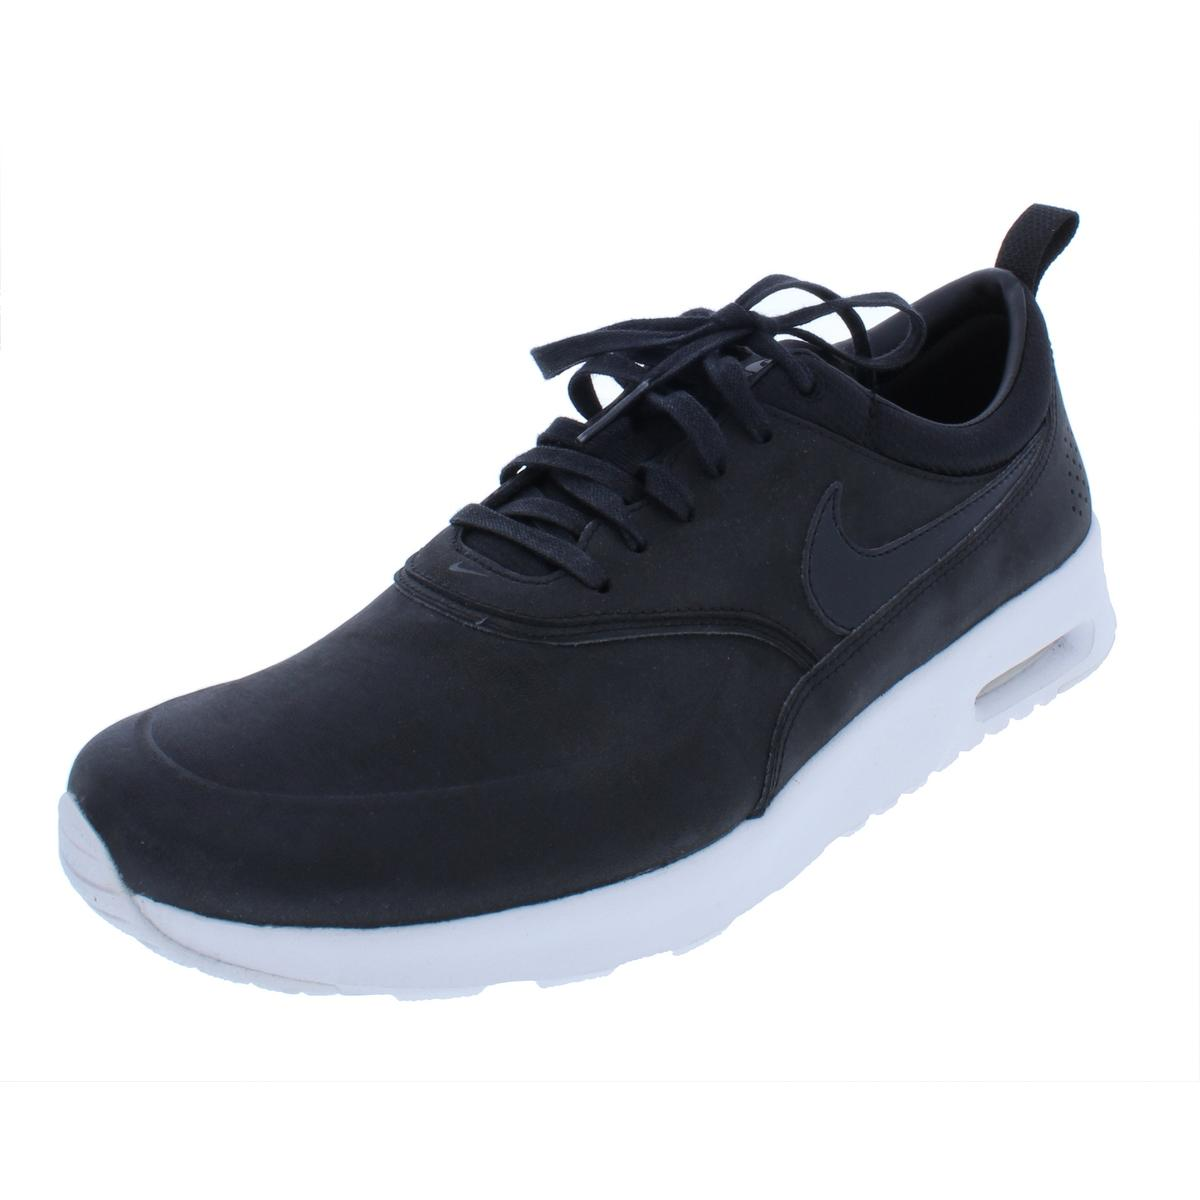 Nike Leder Damenschuhe Air Max Thea Leder Nike Fashion Niedrig-Top Sneakers Schuhes BHFO 9220 c6108a